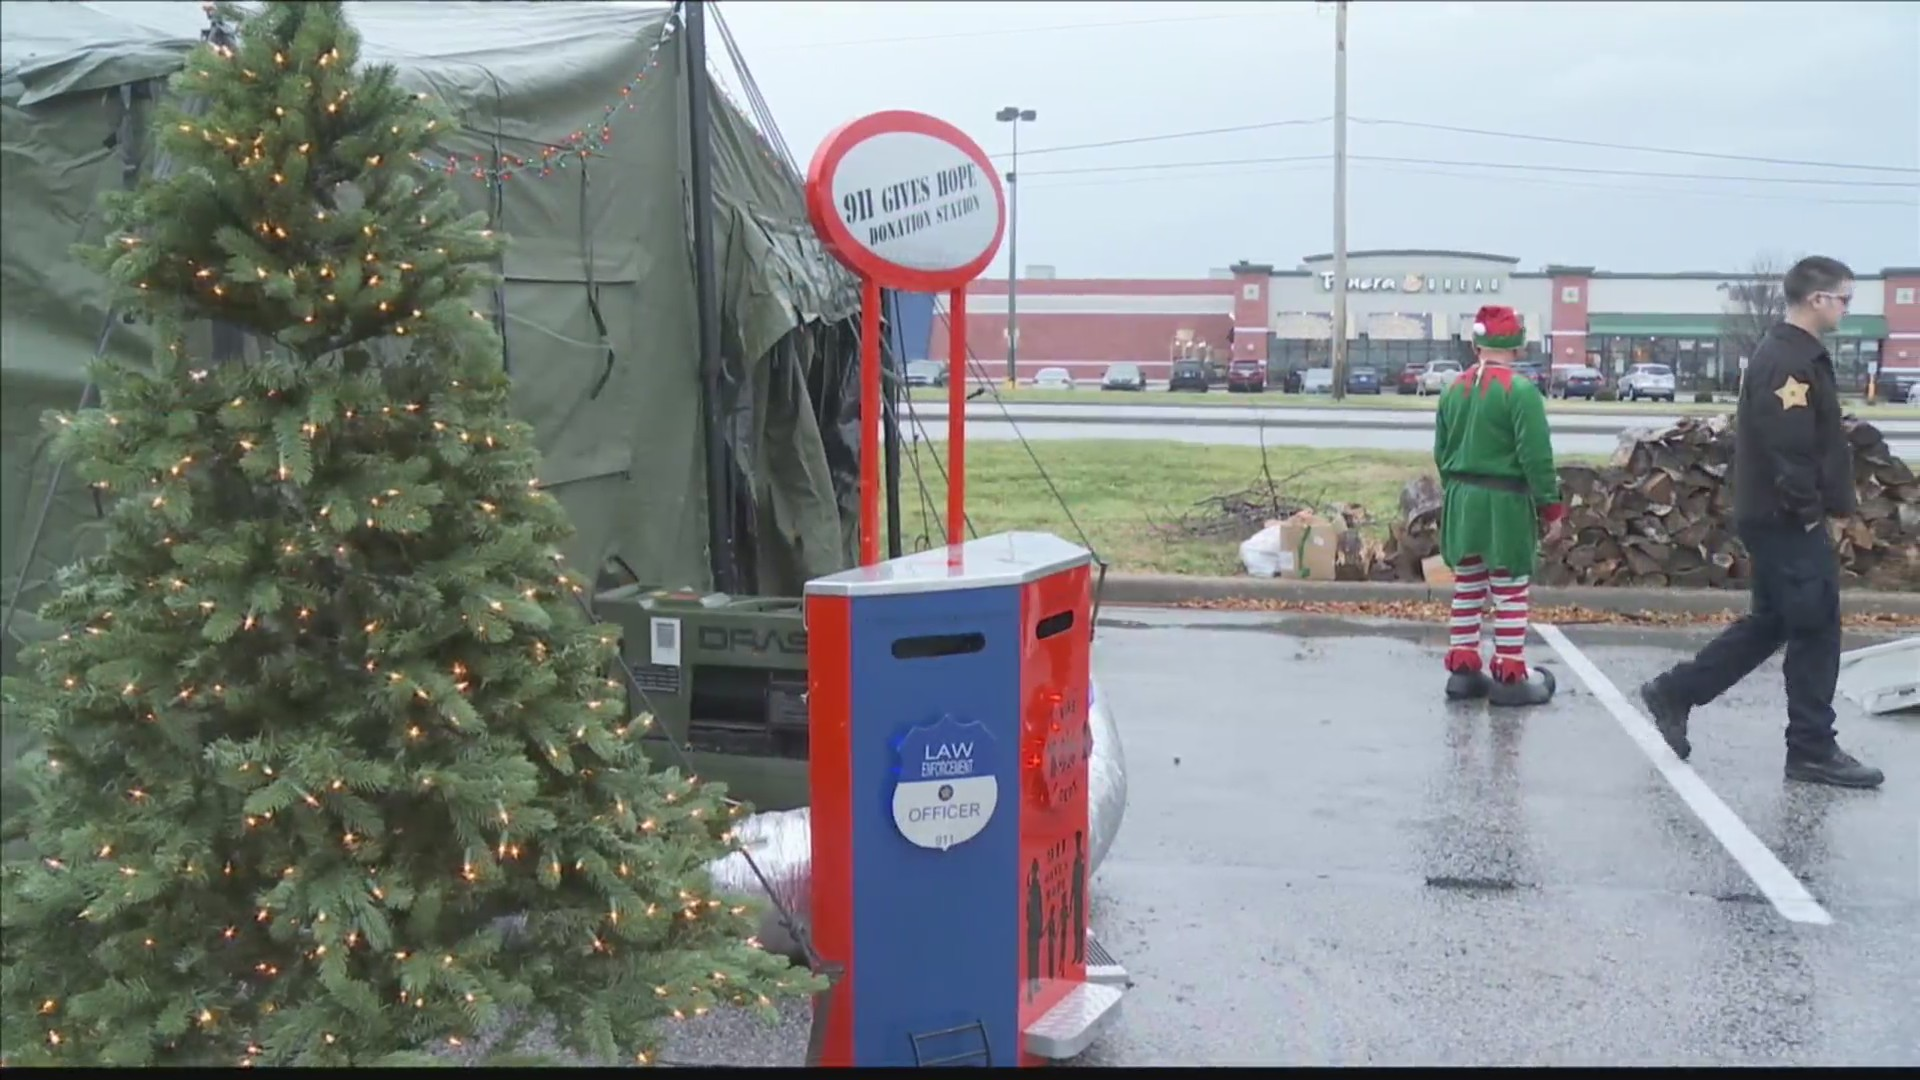 911 Gives Hope Toy Drive